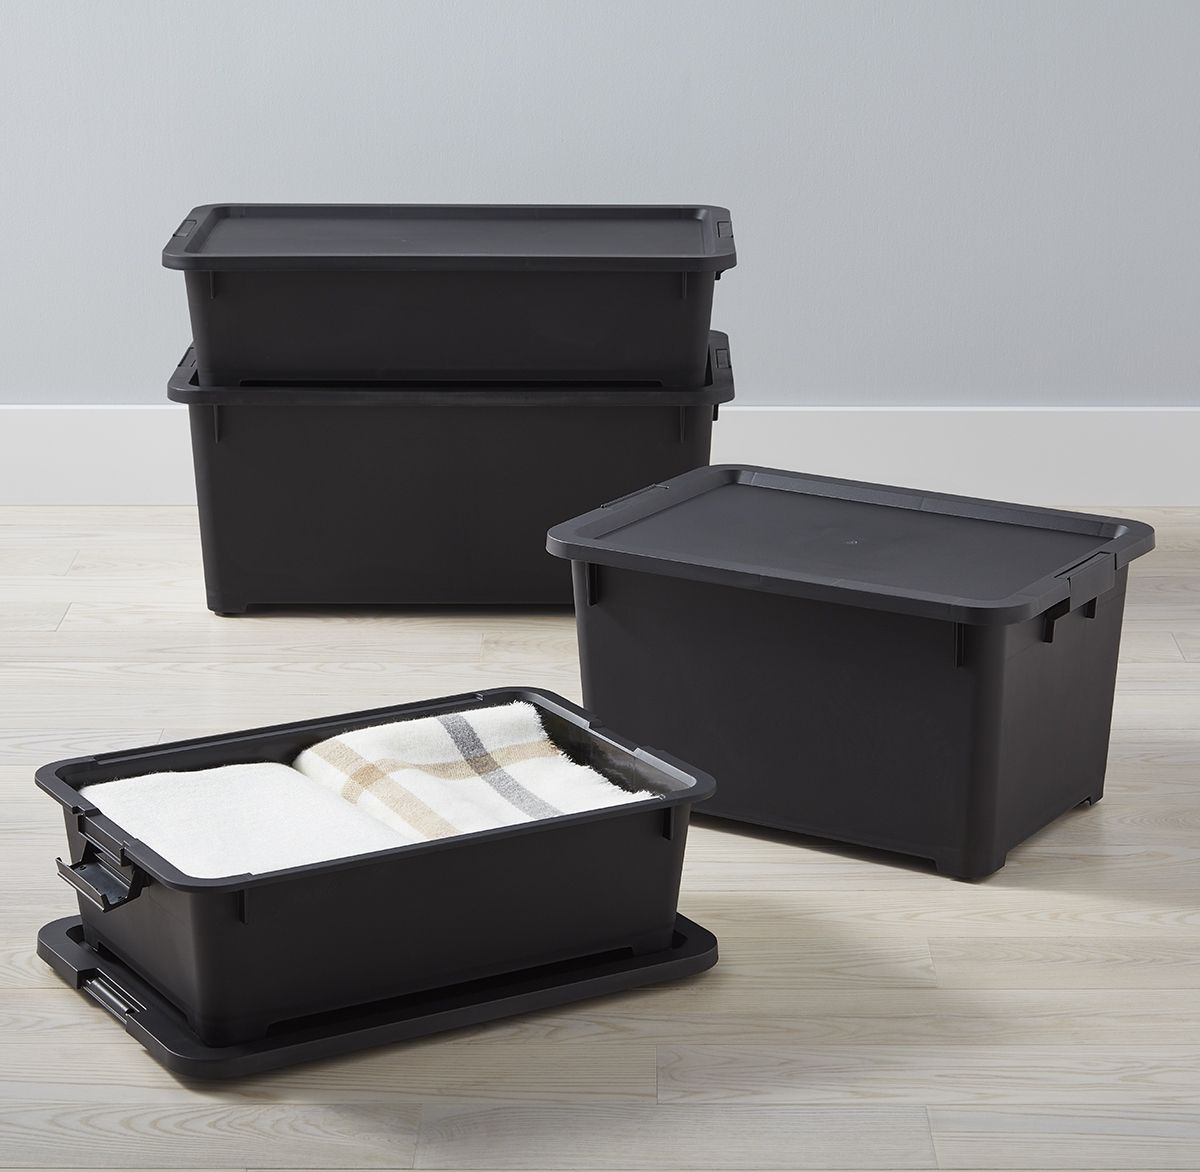 With Recessed Wheels And Secure Fit Lids Our Rolling Storage Totes Are An Easy Dependable Solution For Garages Plastic Storage Totes Storage Rolling Storage